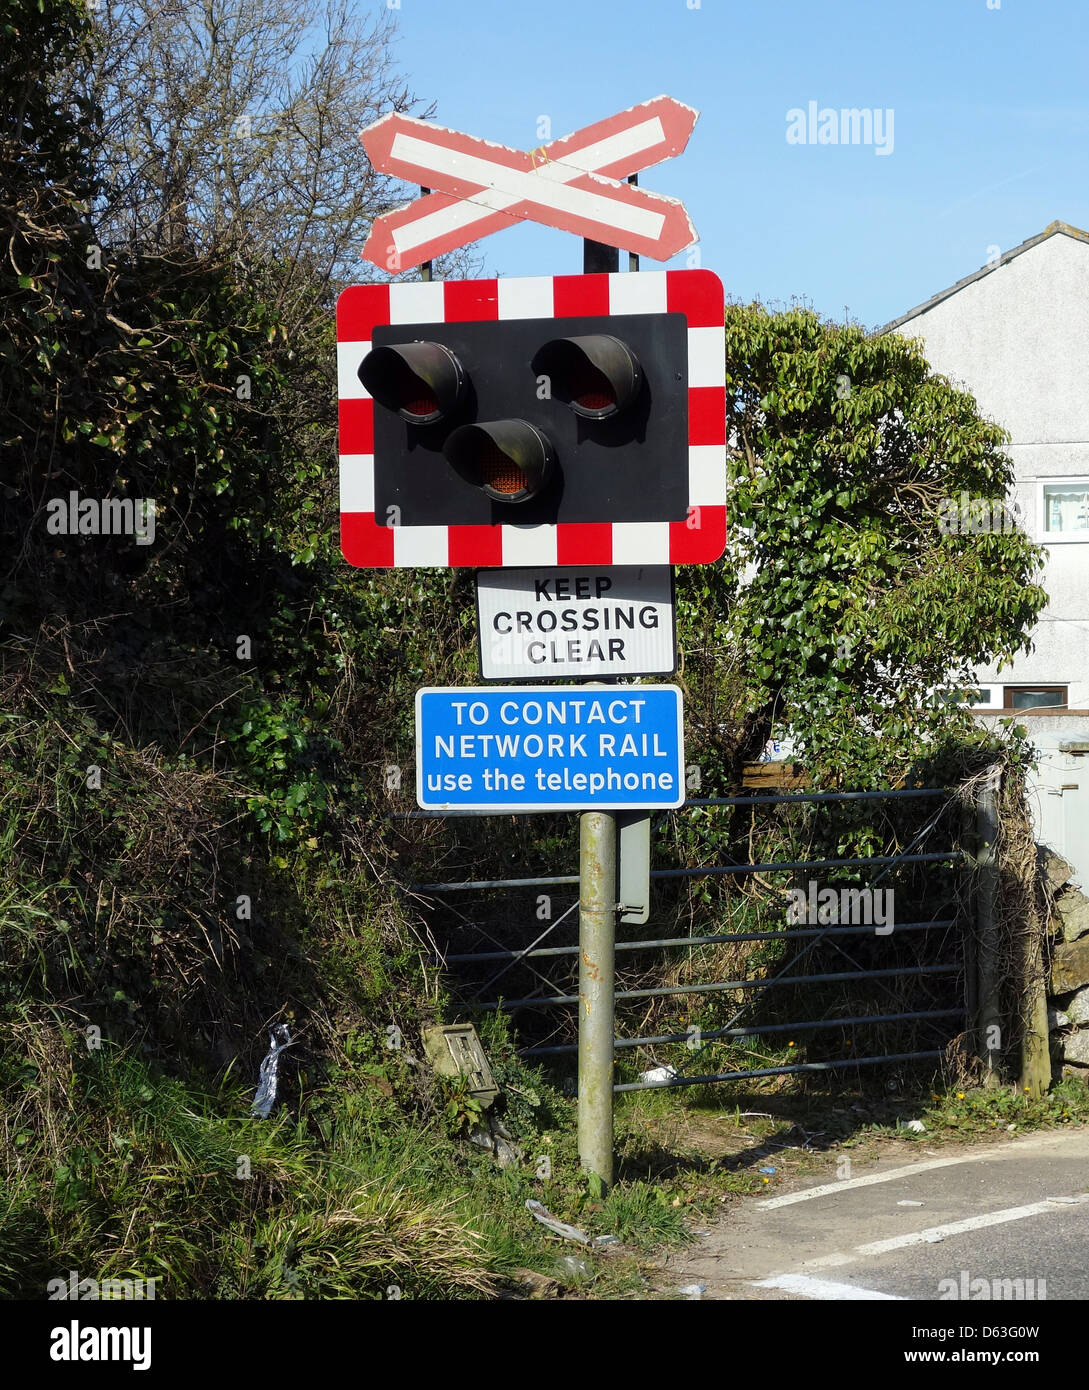 Traffic lights at a level crossing - Stock Image